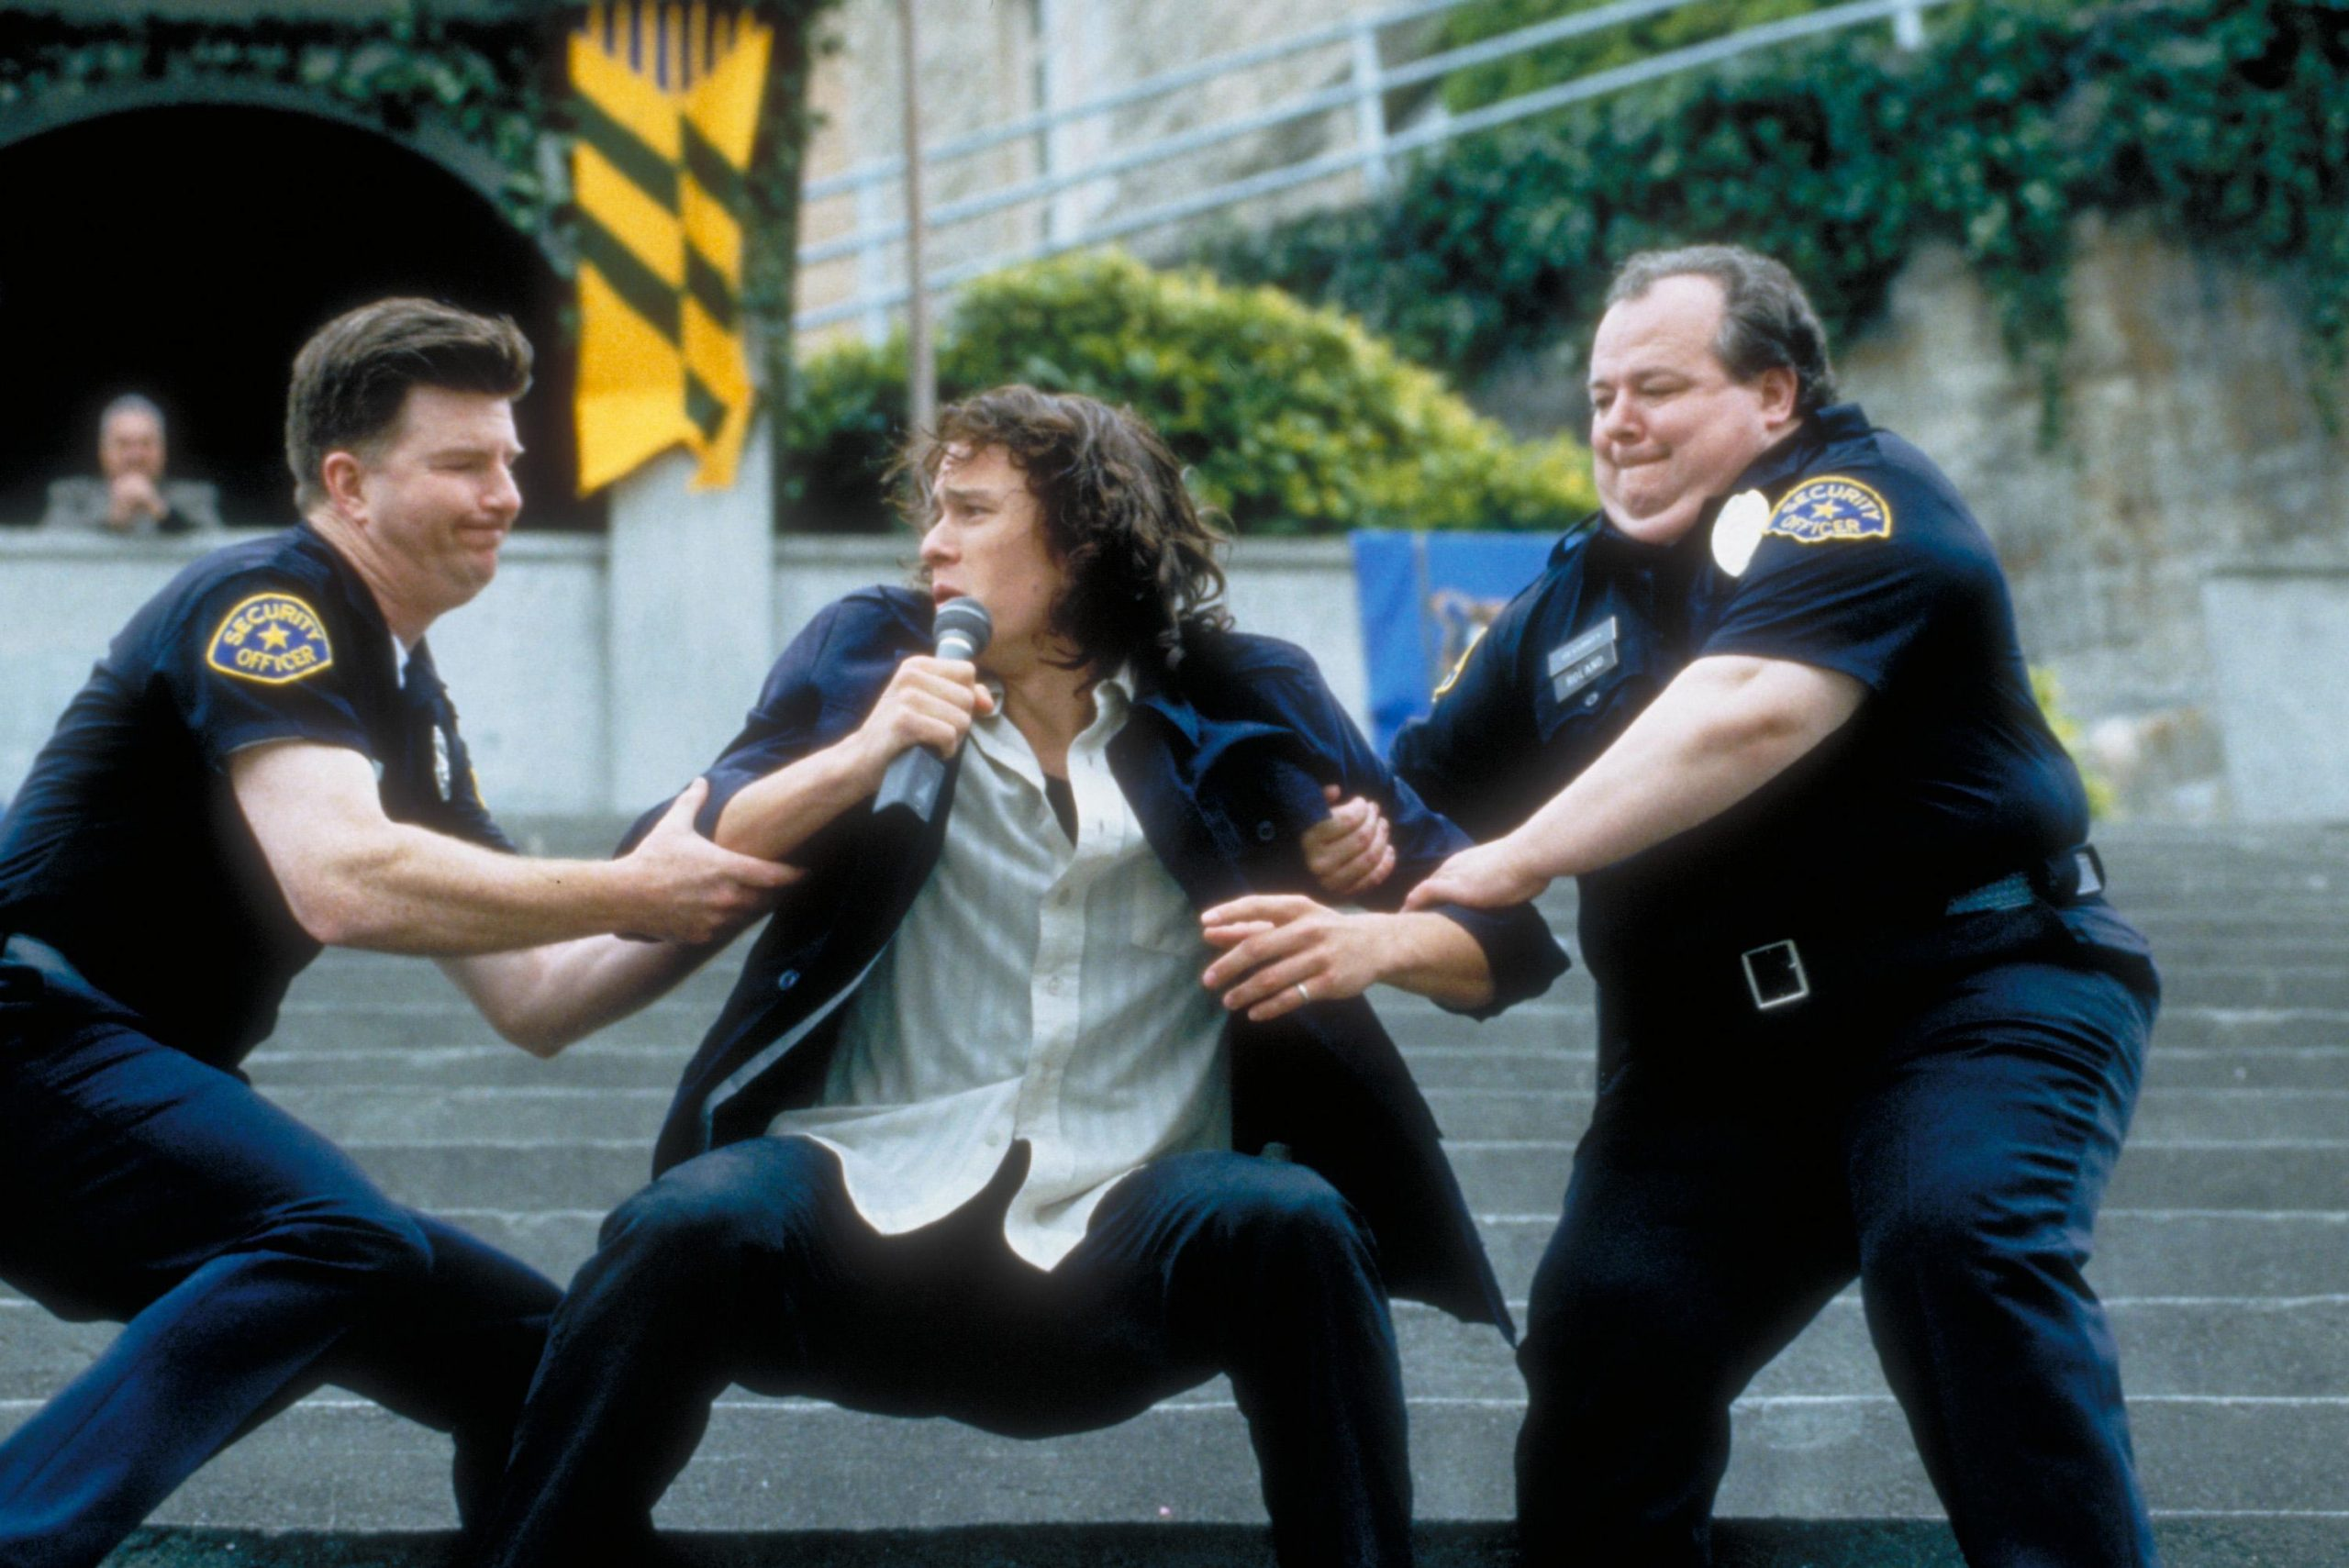 An image from 10 Things of Patrick wrestling campus cops